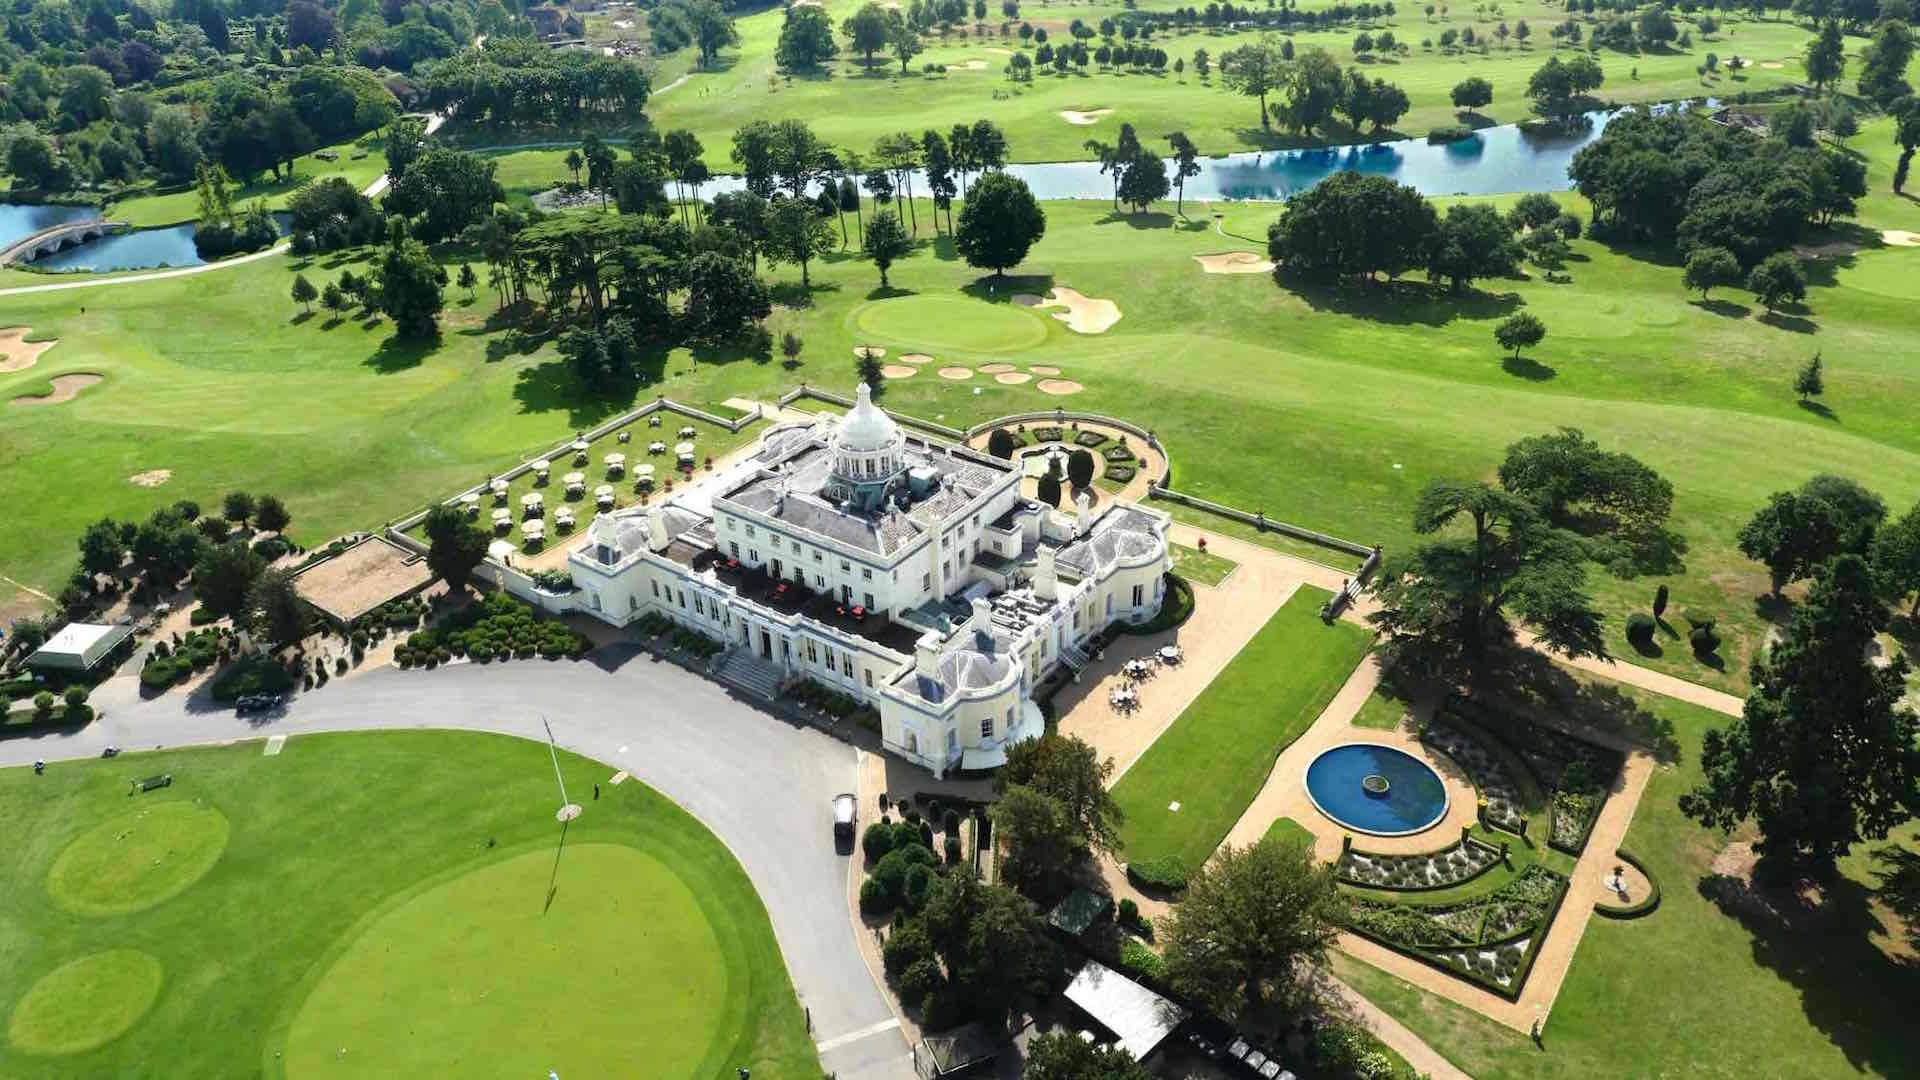 Capability Brown's 300th anniversary celebrated at Stoke Park